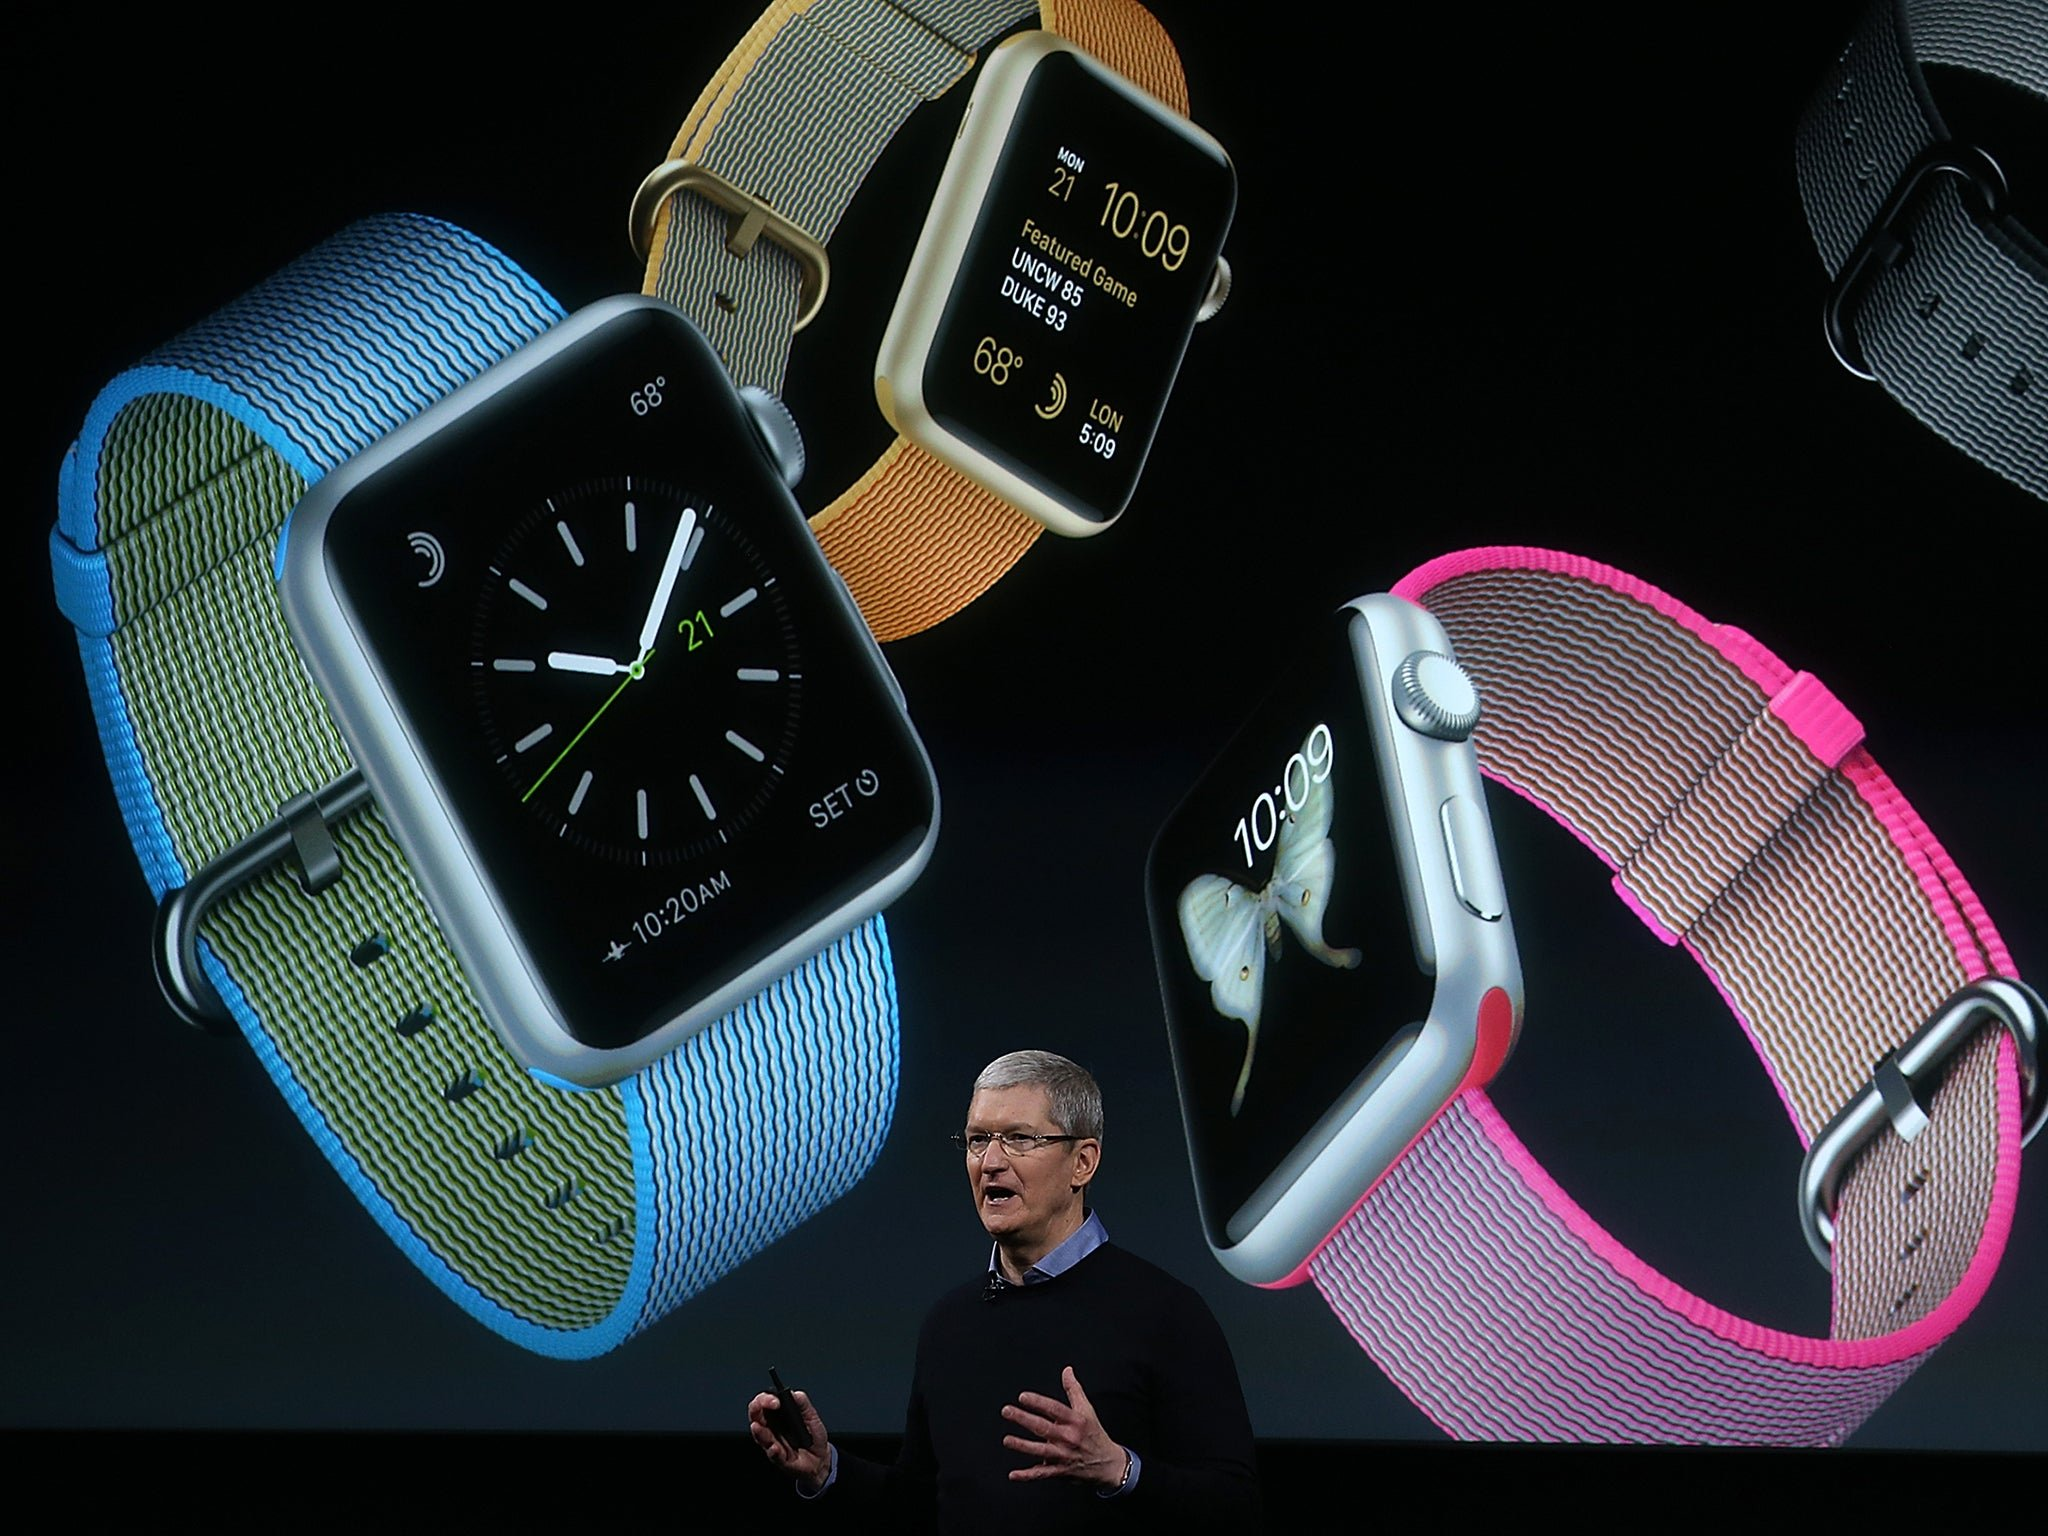 How to protect our lost Apple Watch from our iPhone